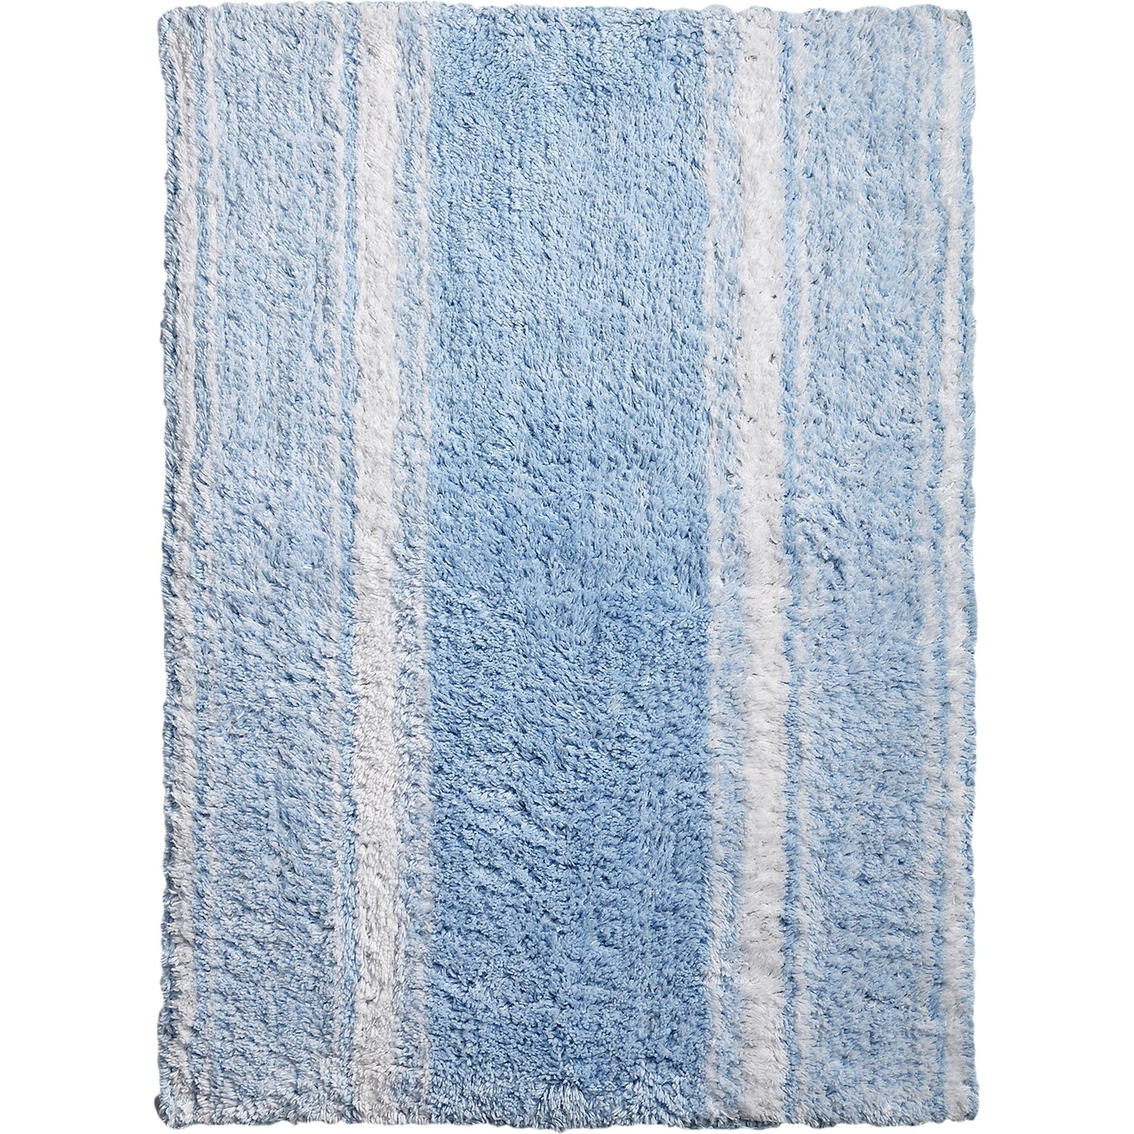 Martha stewart collection cotton reversible 20 x 32 bath rug bath rugs home appliances Martha stewart bathroom collection